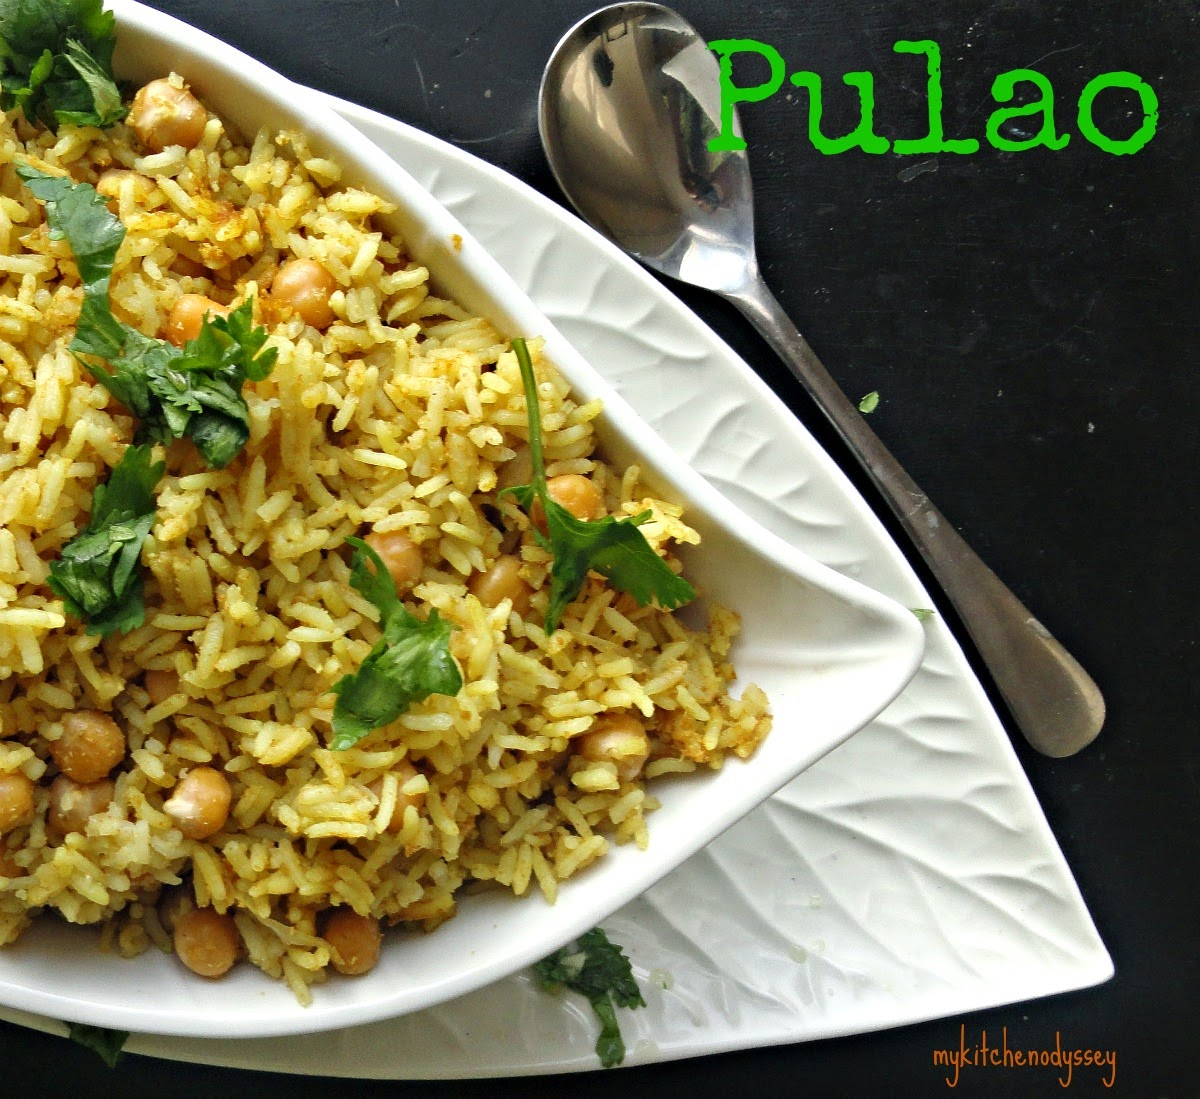 chana pulao is ready